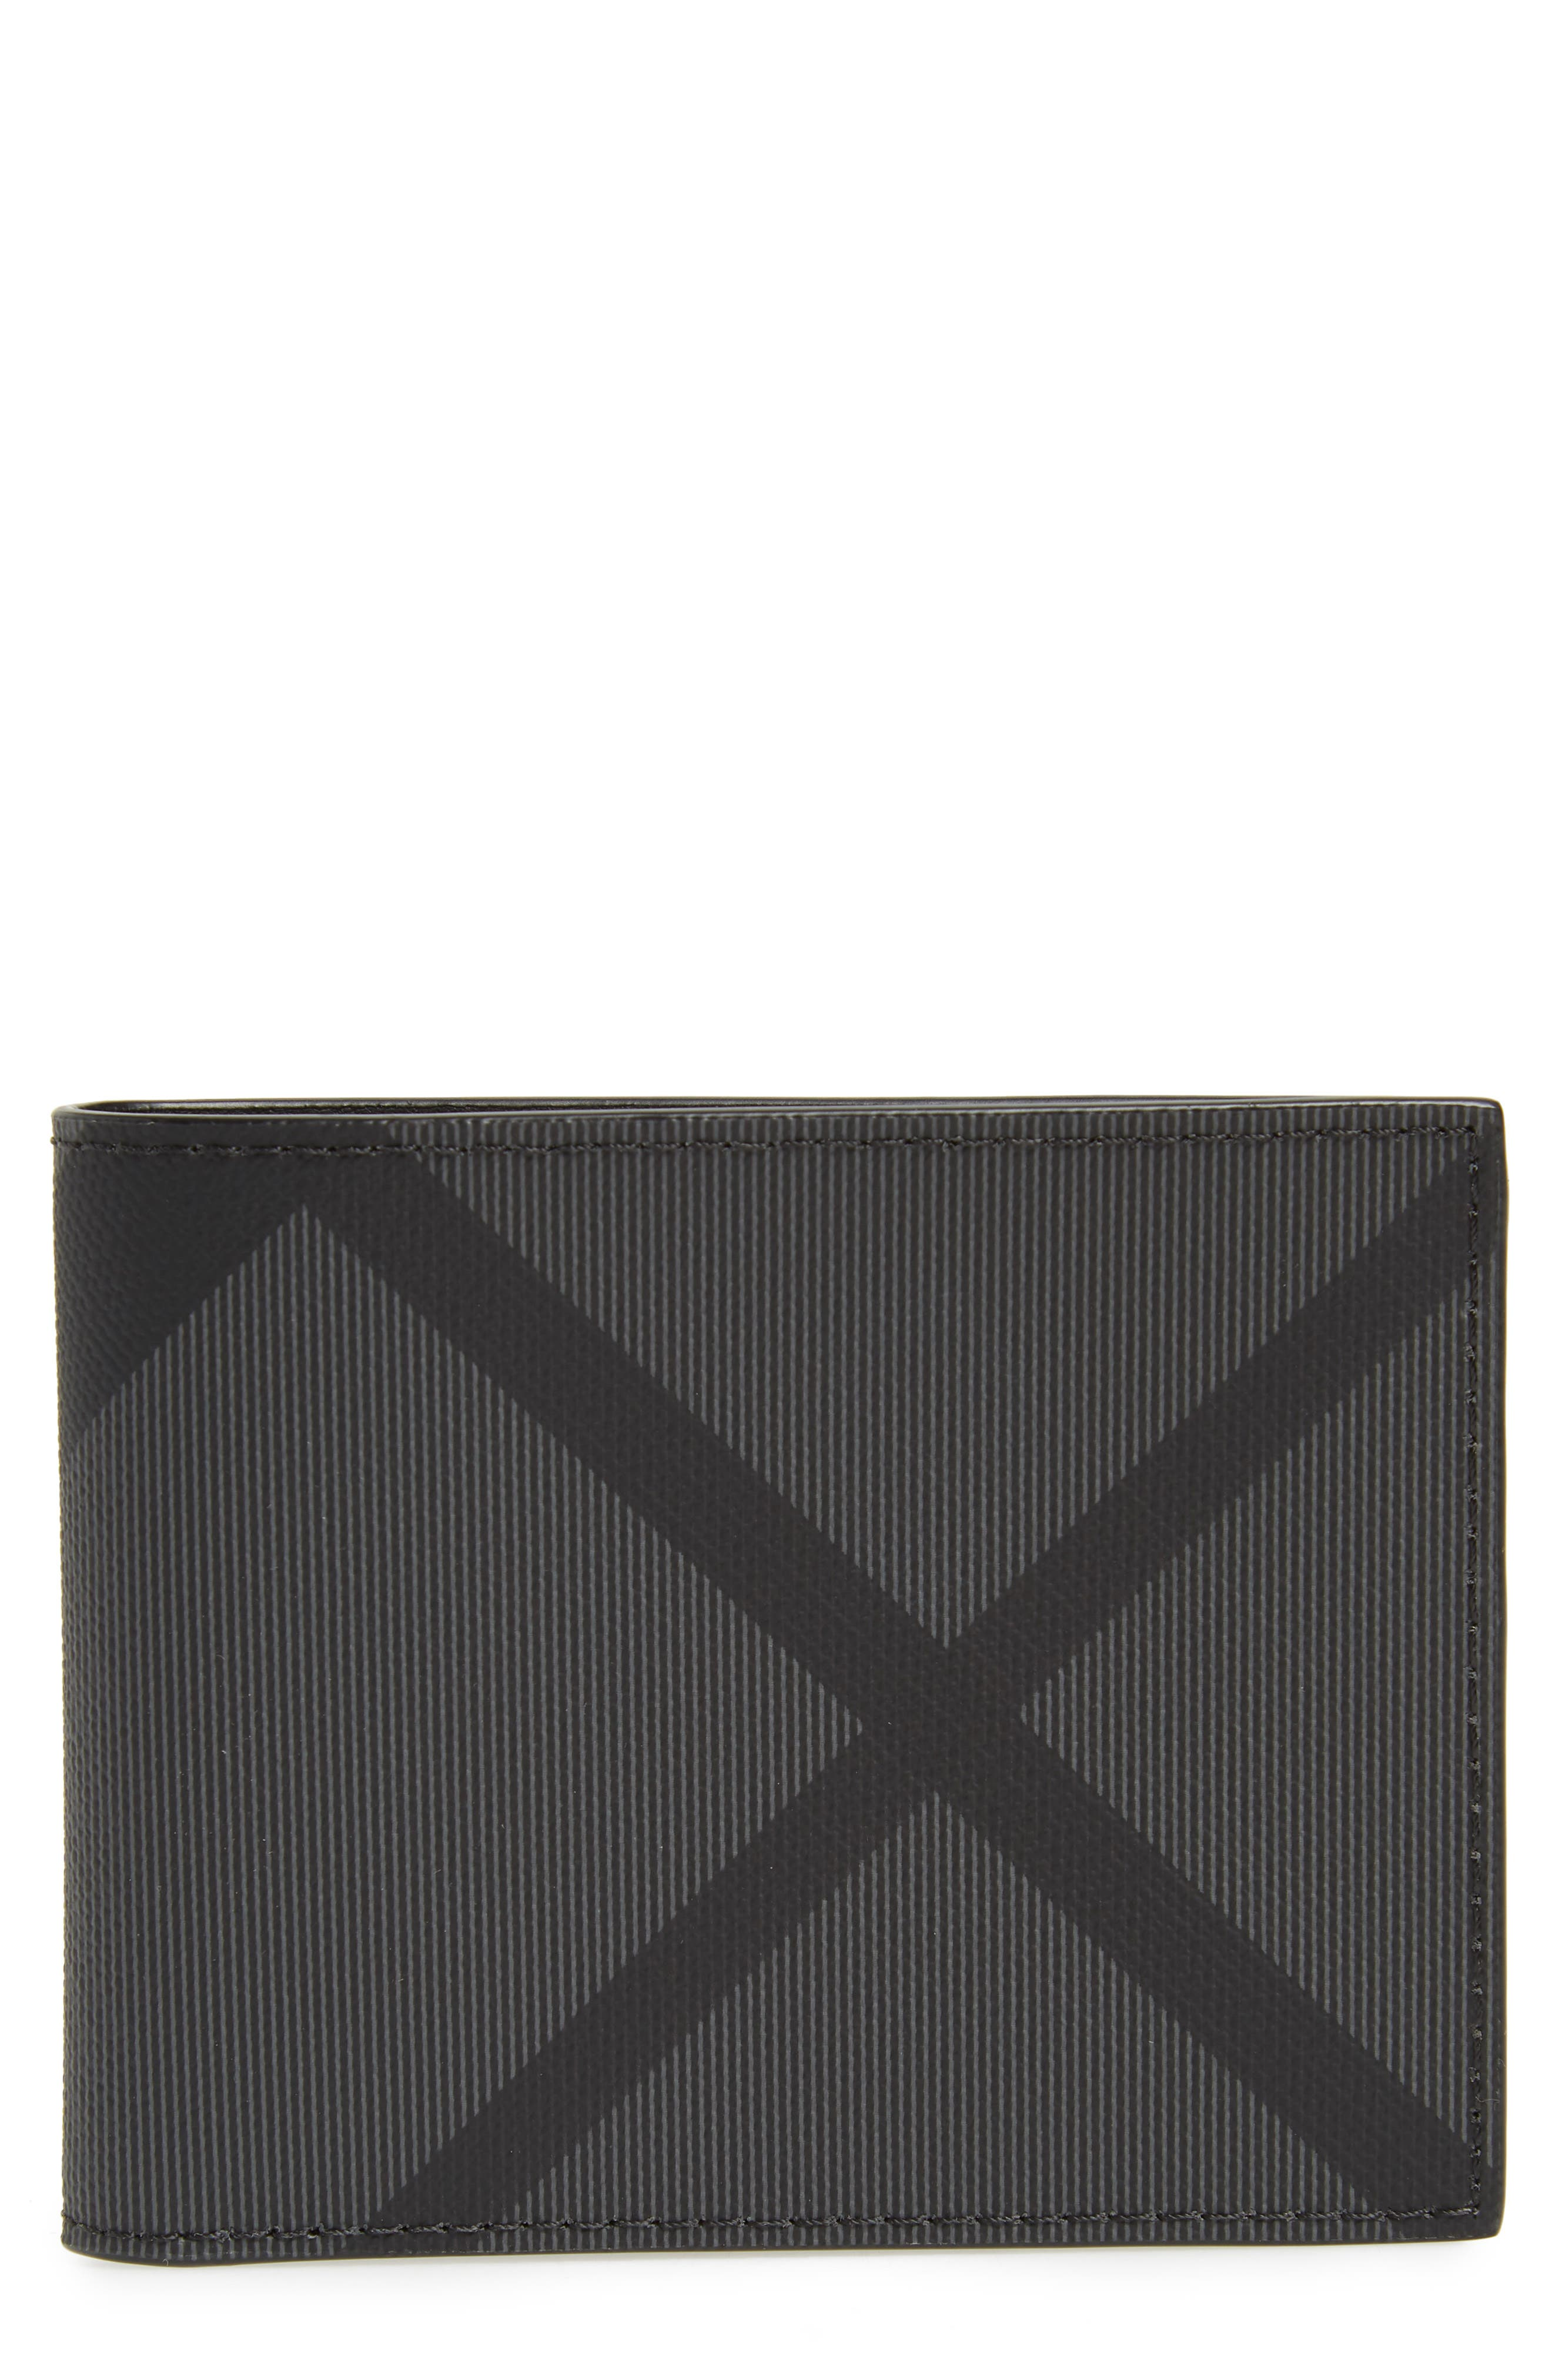 BURBERRY Check Wallet, Main, color, 020